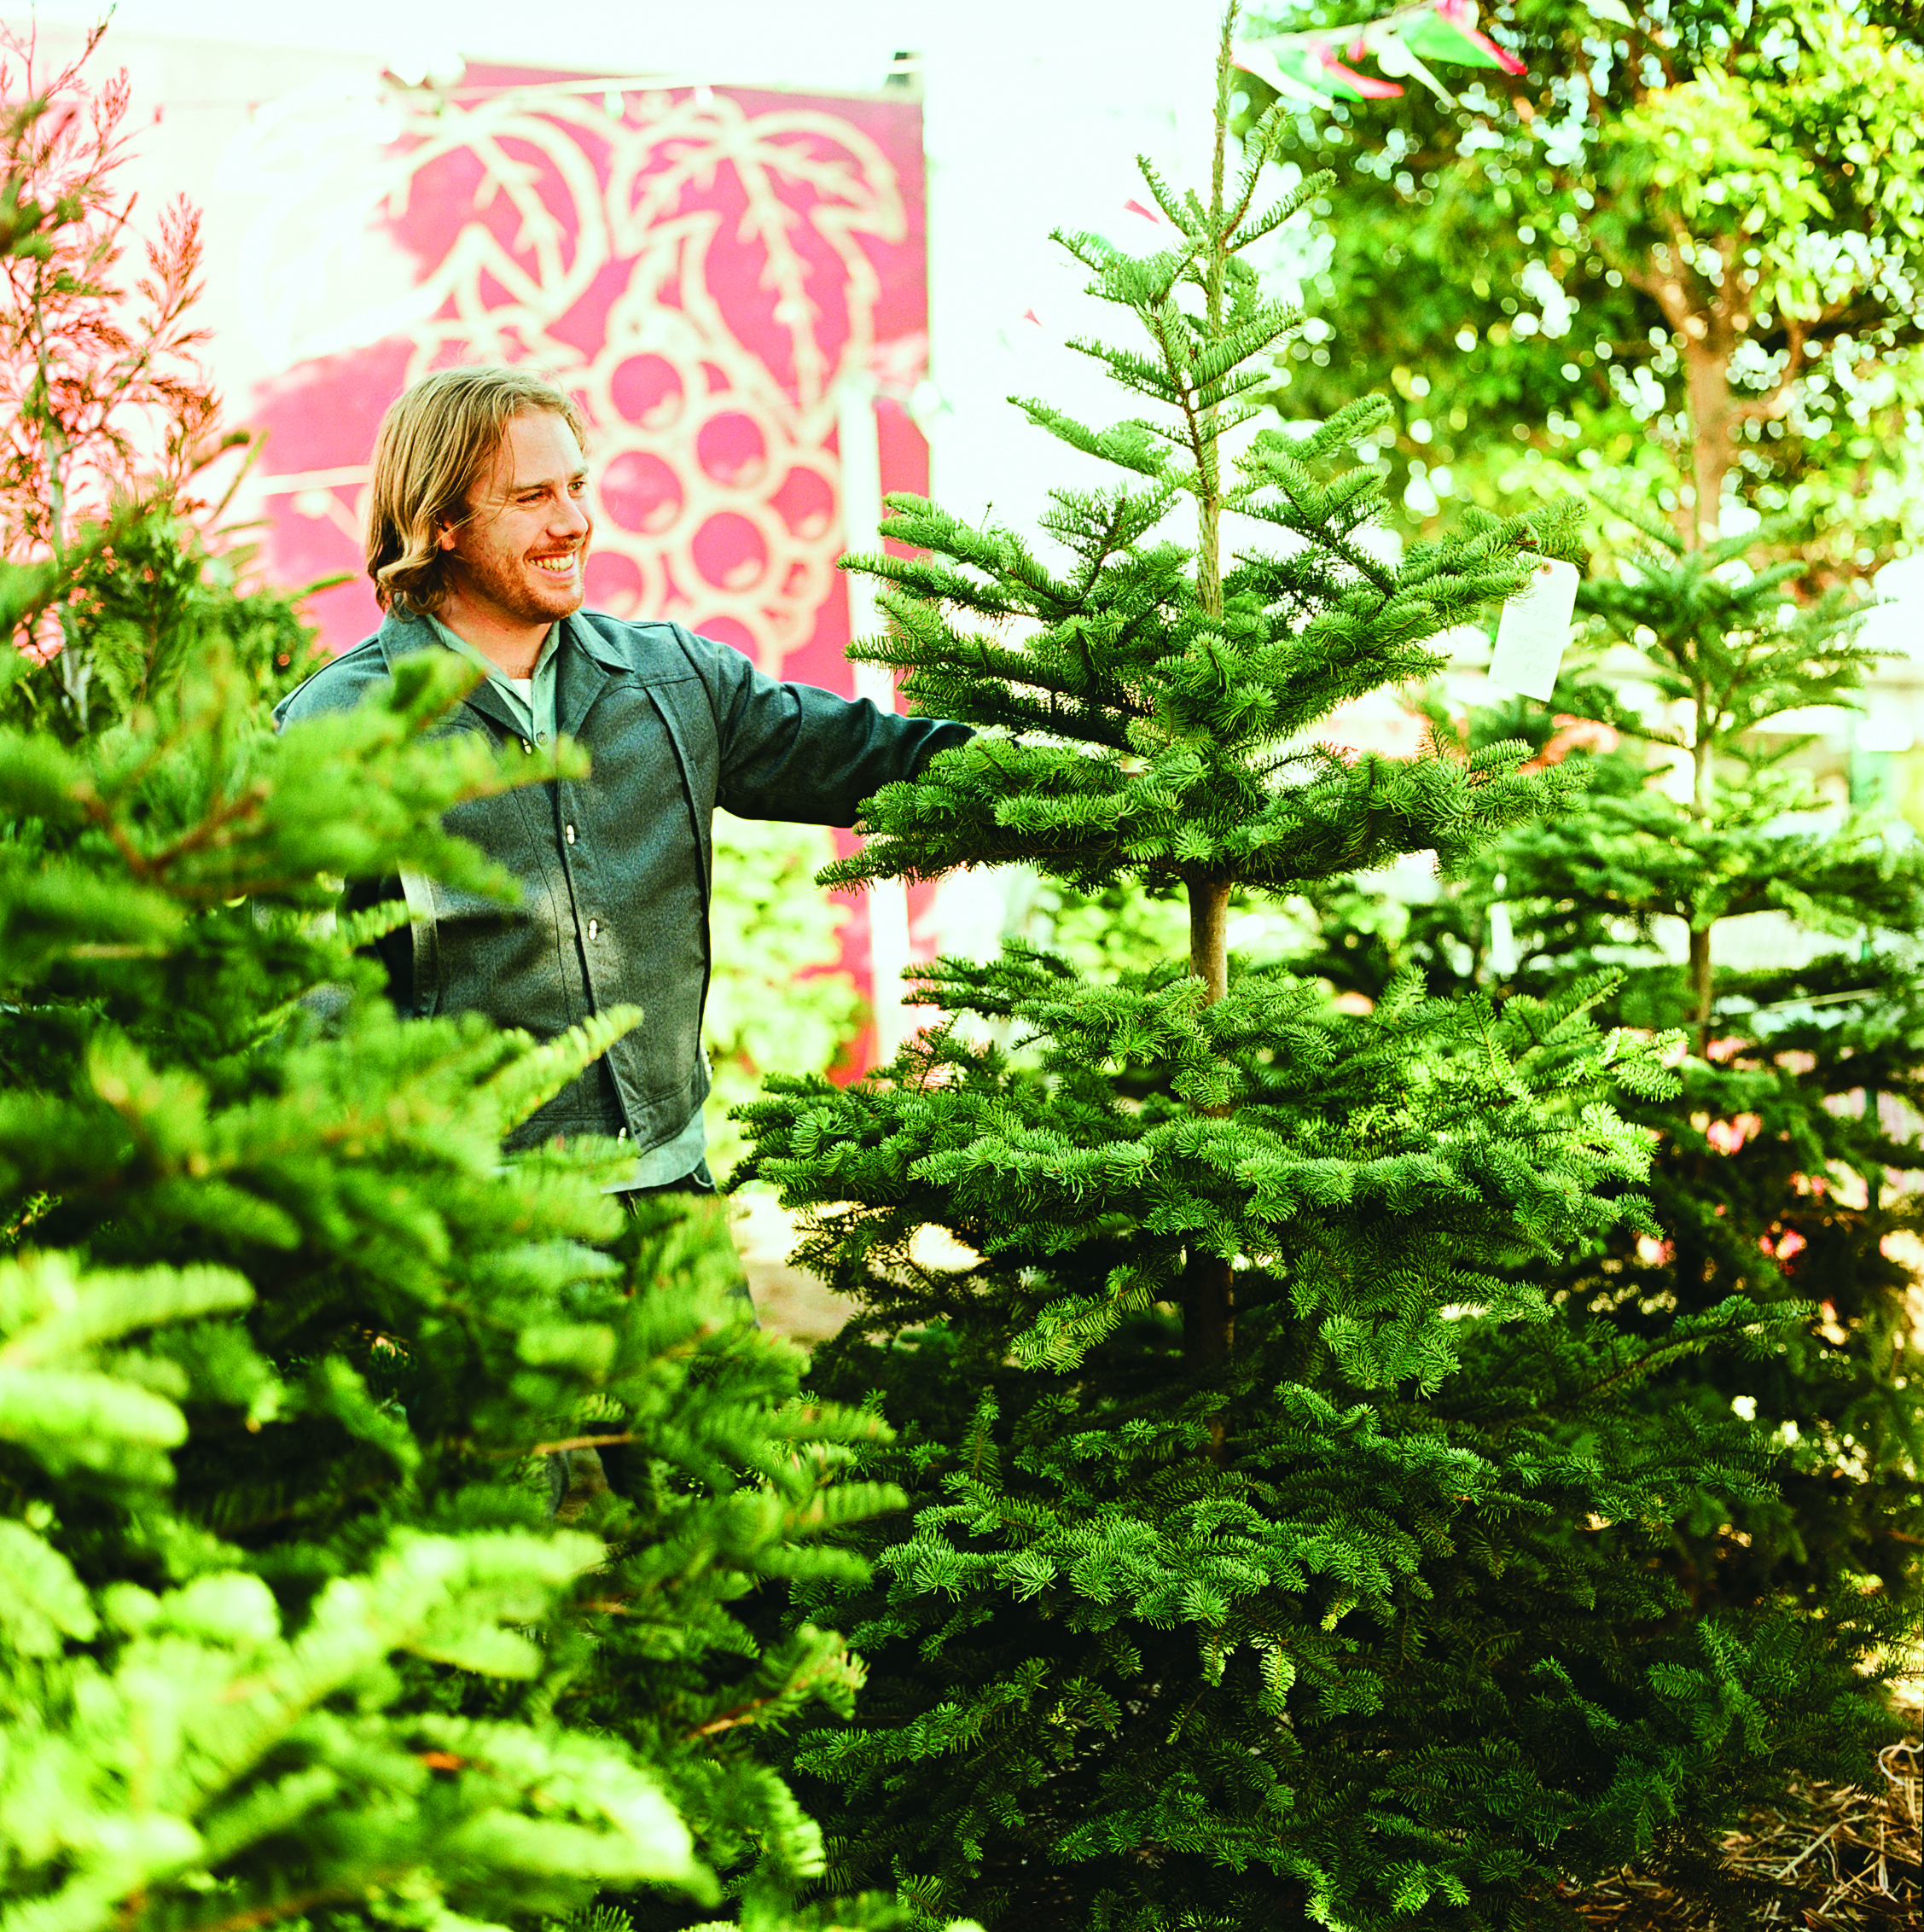 Living Christmas Tree.The Best Living Christmas Trees For A Festive Holiday Season